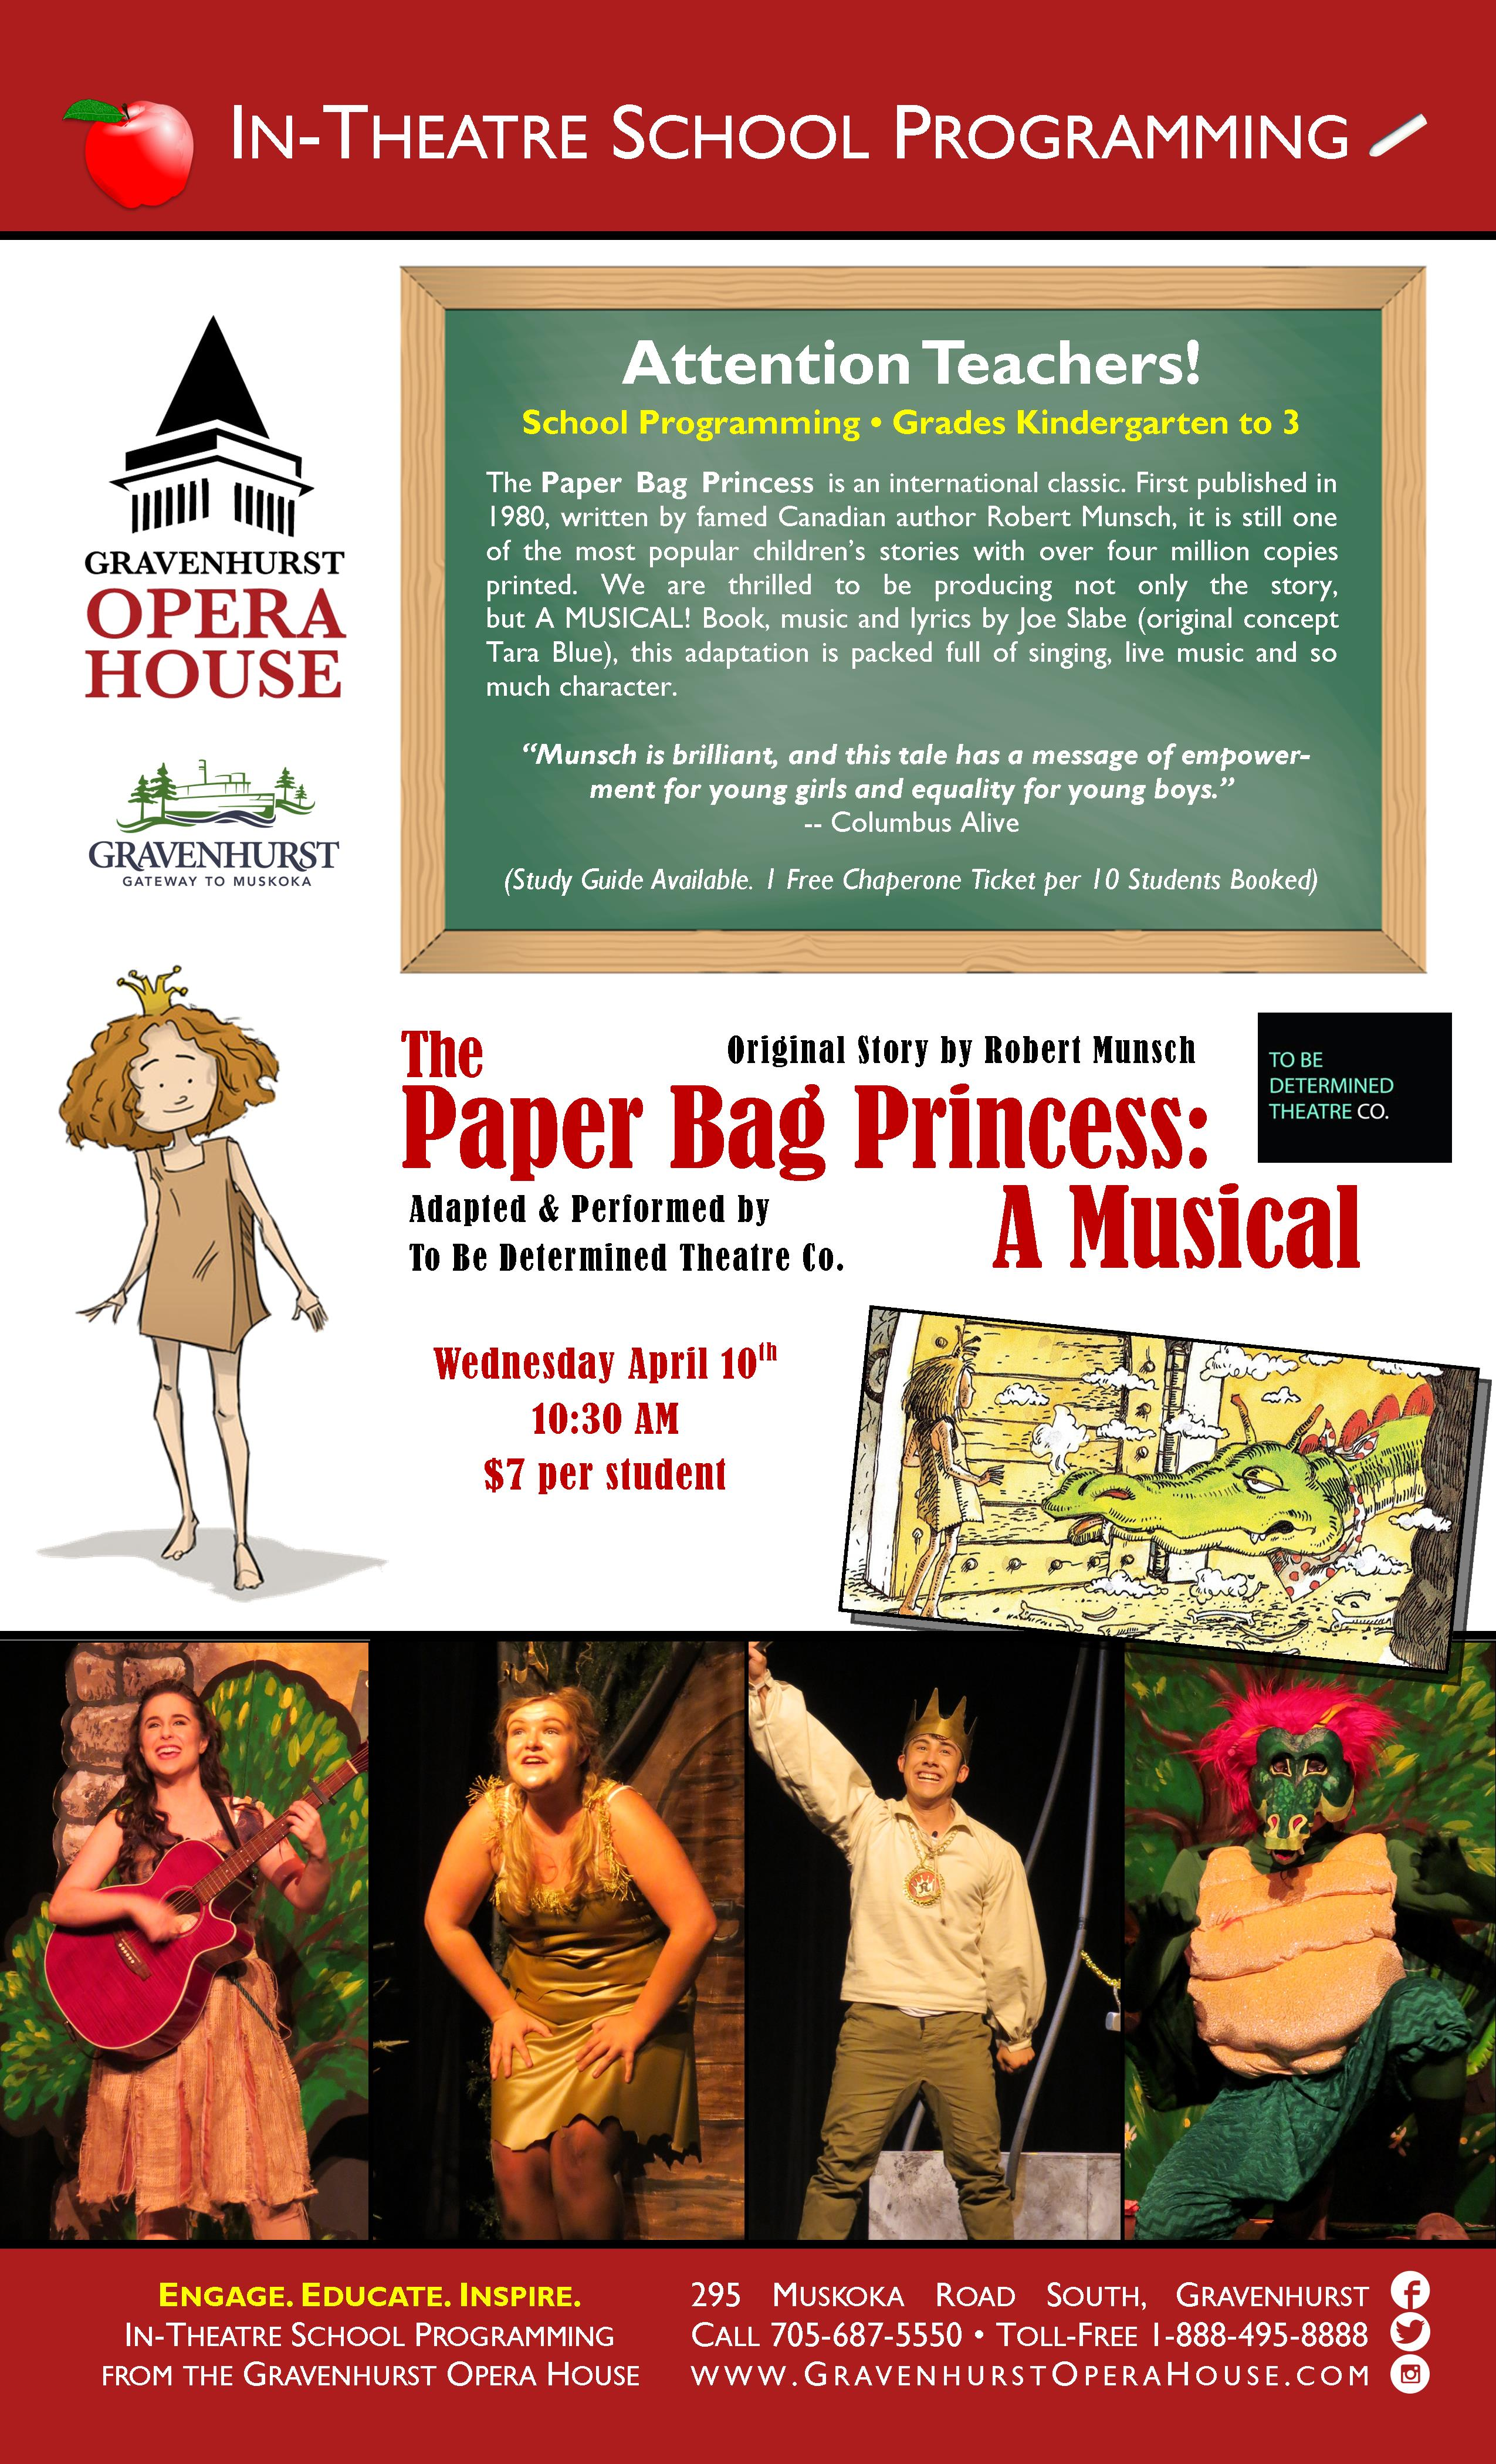 Promotional Poster for the upcoming school show The Paper Bag Princess: A Musical on April 10th, 2019